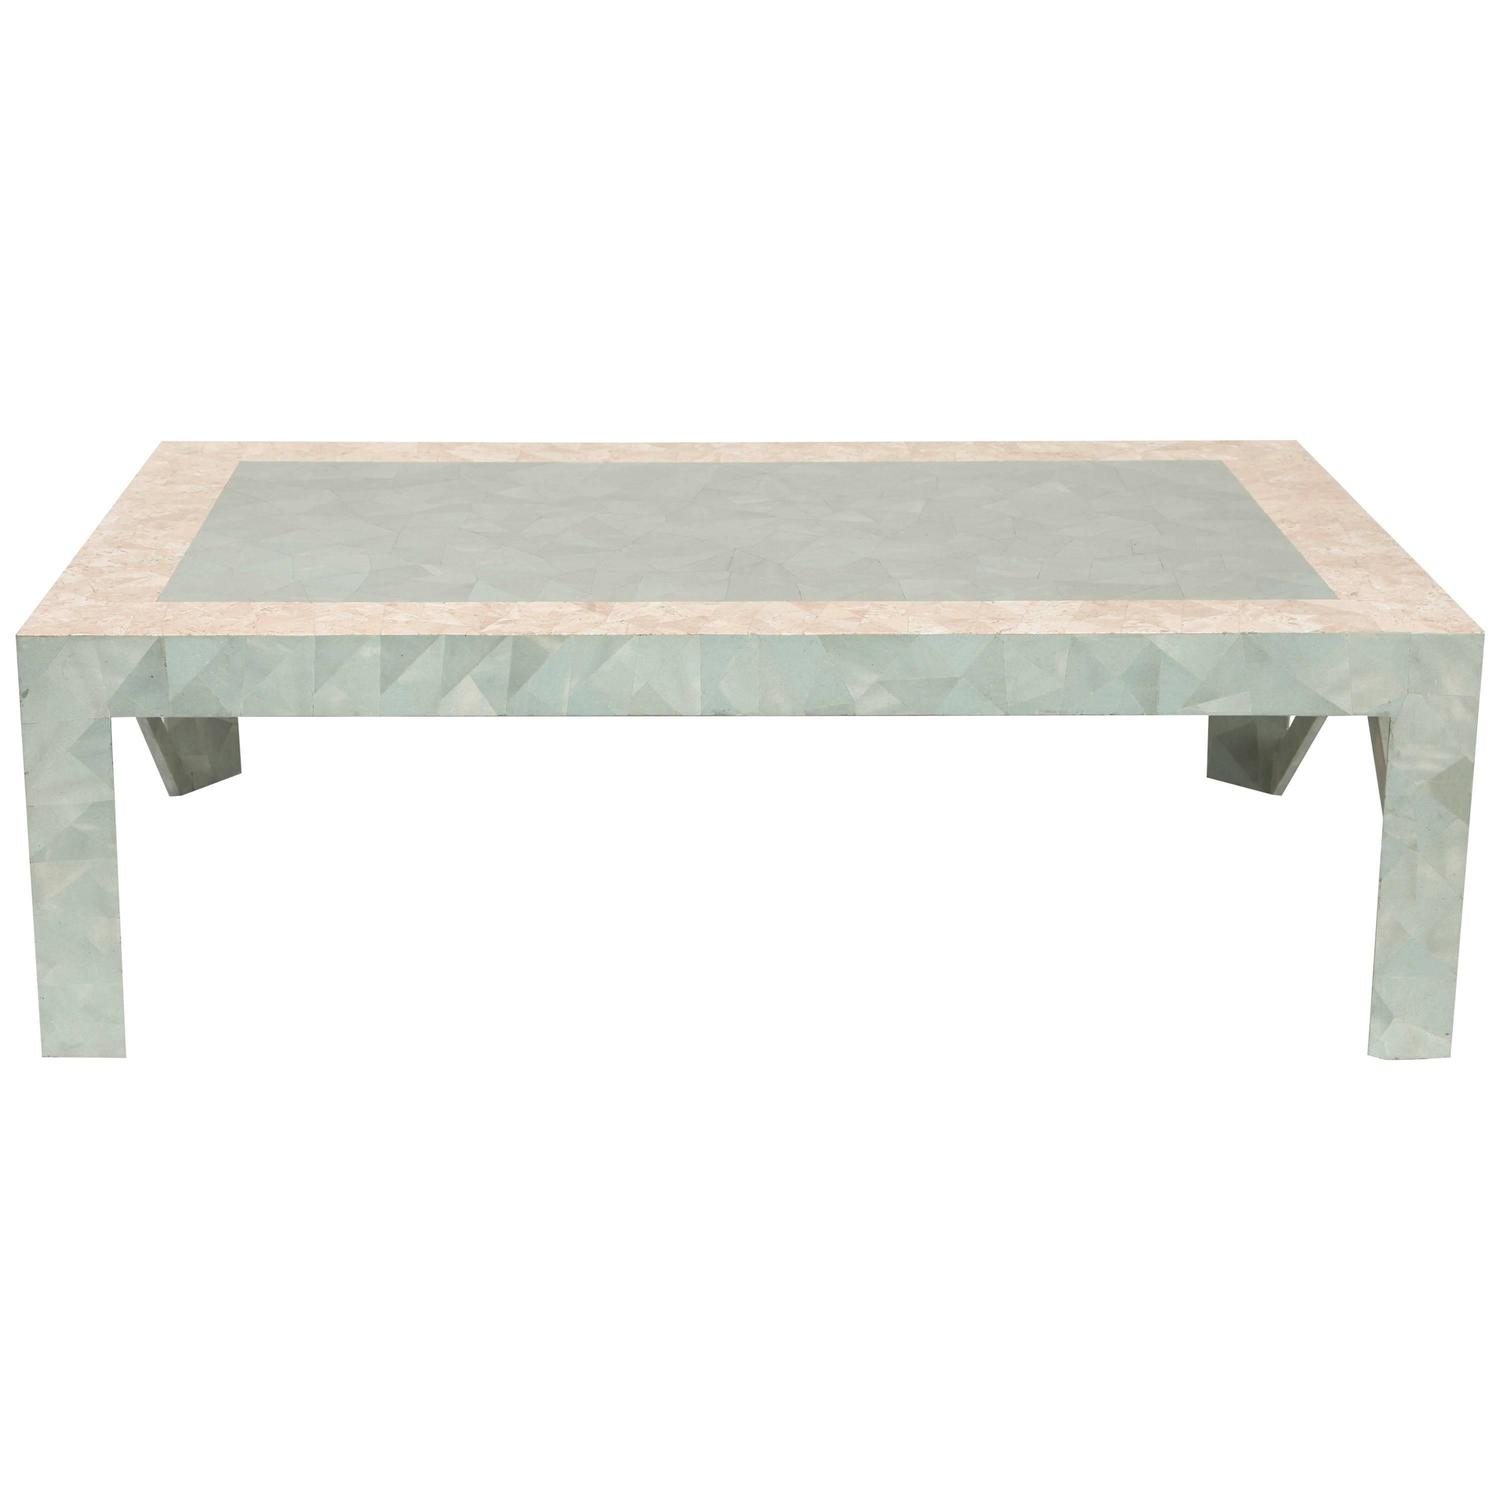 Architectural tessellated coffee table at 1stdibs for Architectural coffee table